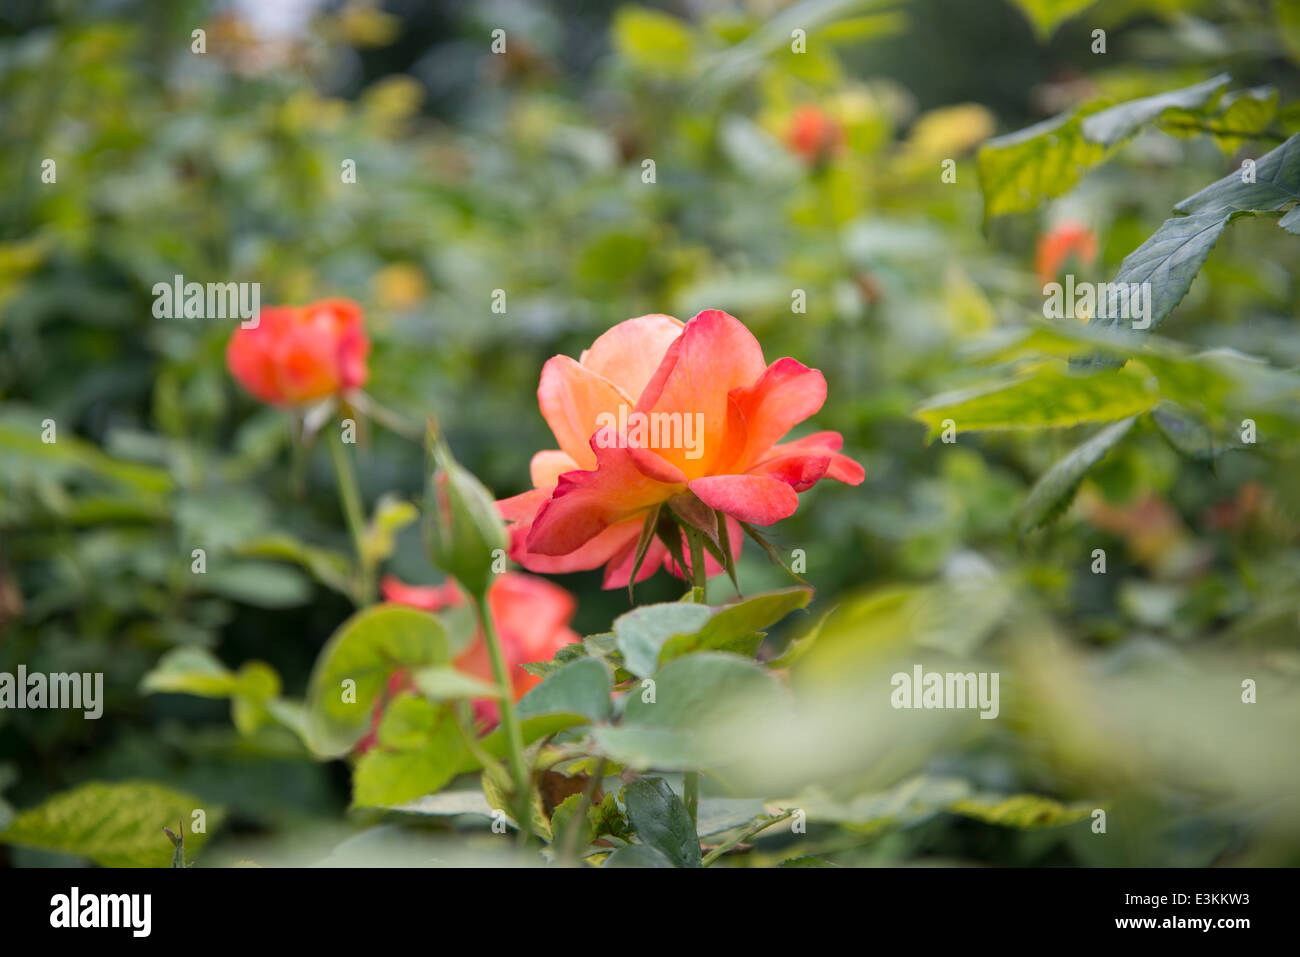 Rose 'Pensioners Voice' - Stock Image